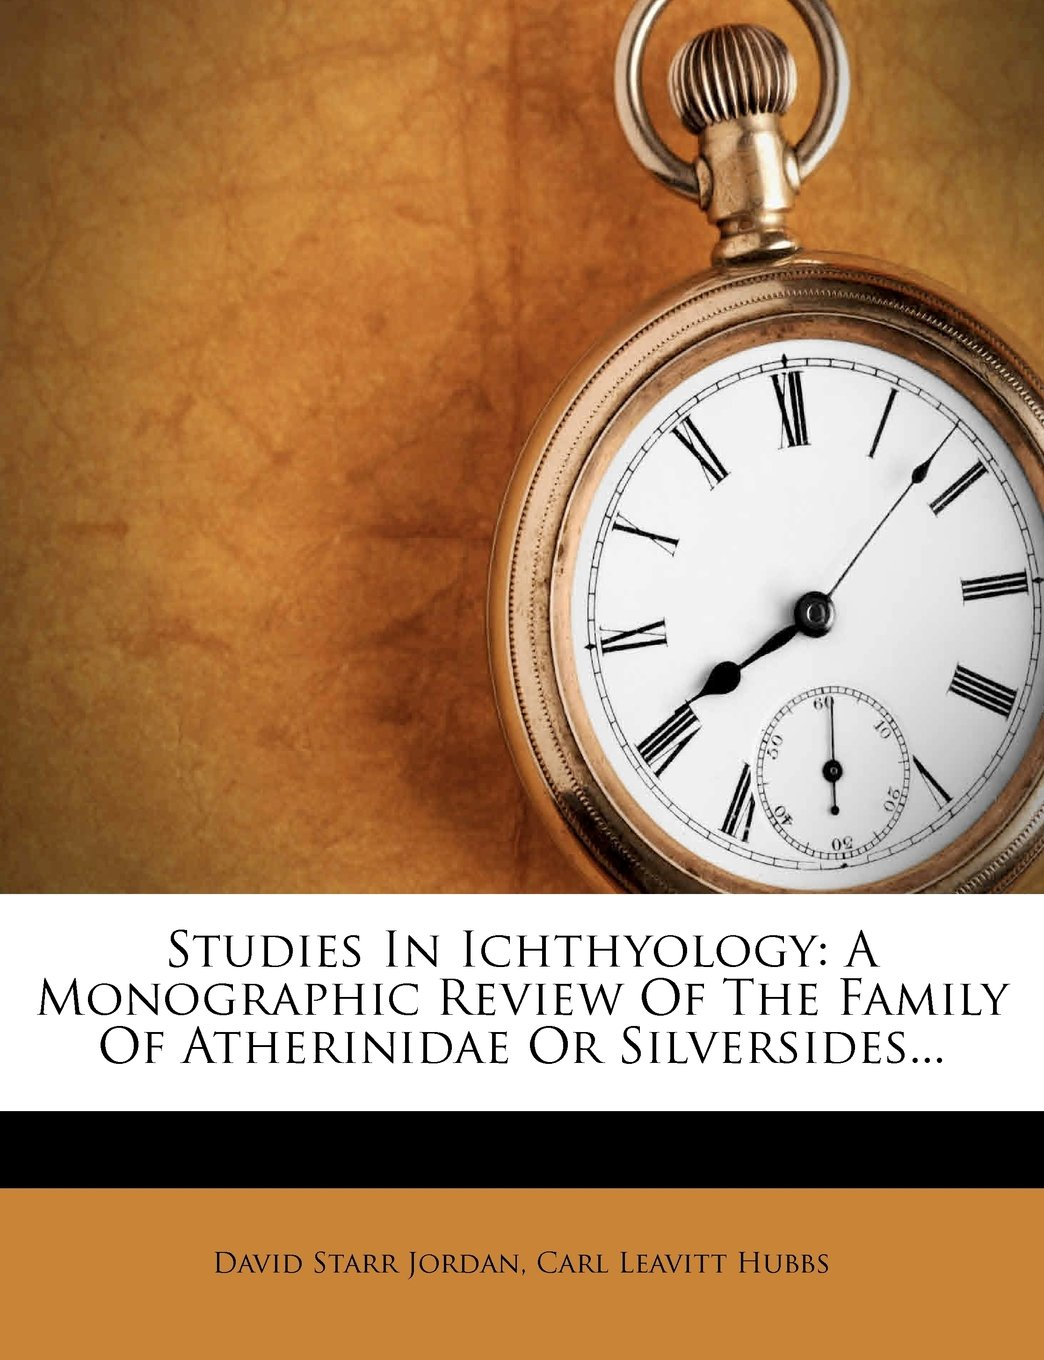 Read Online Studies in Ichthyology: A Monographic Review of the Family of Atherinidae or Silversides... PDF